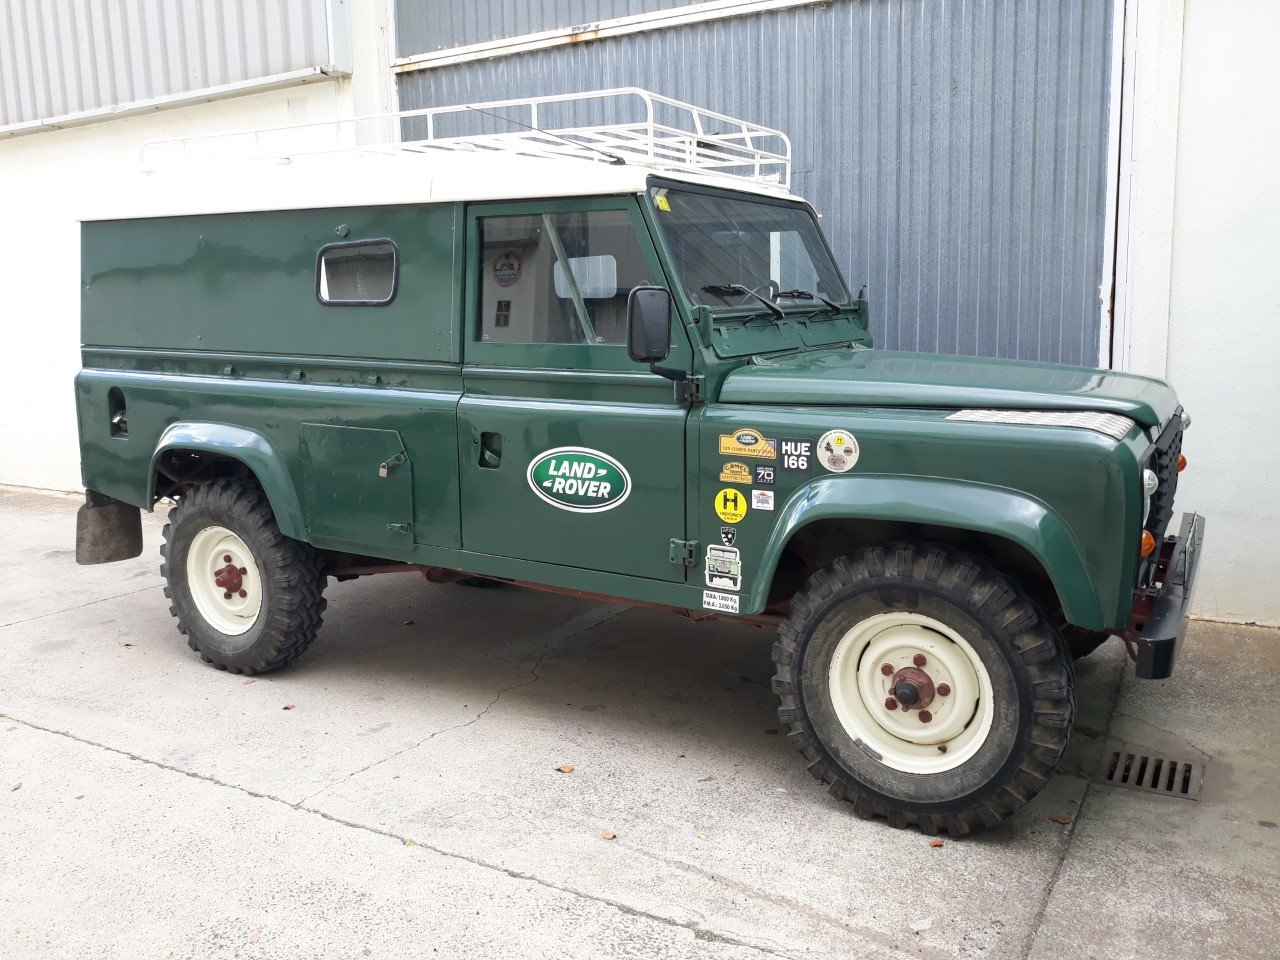 1983 LHD Land Rover Defender 110 Military, super-diesel For Sale (picture 1 of 6)